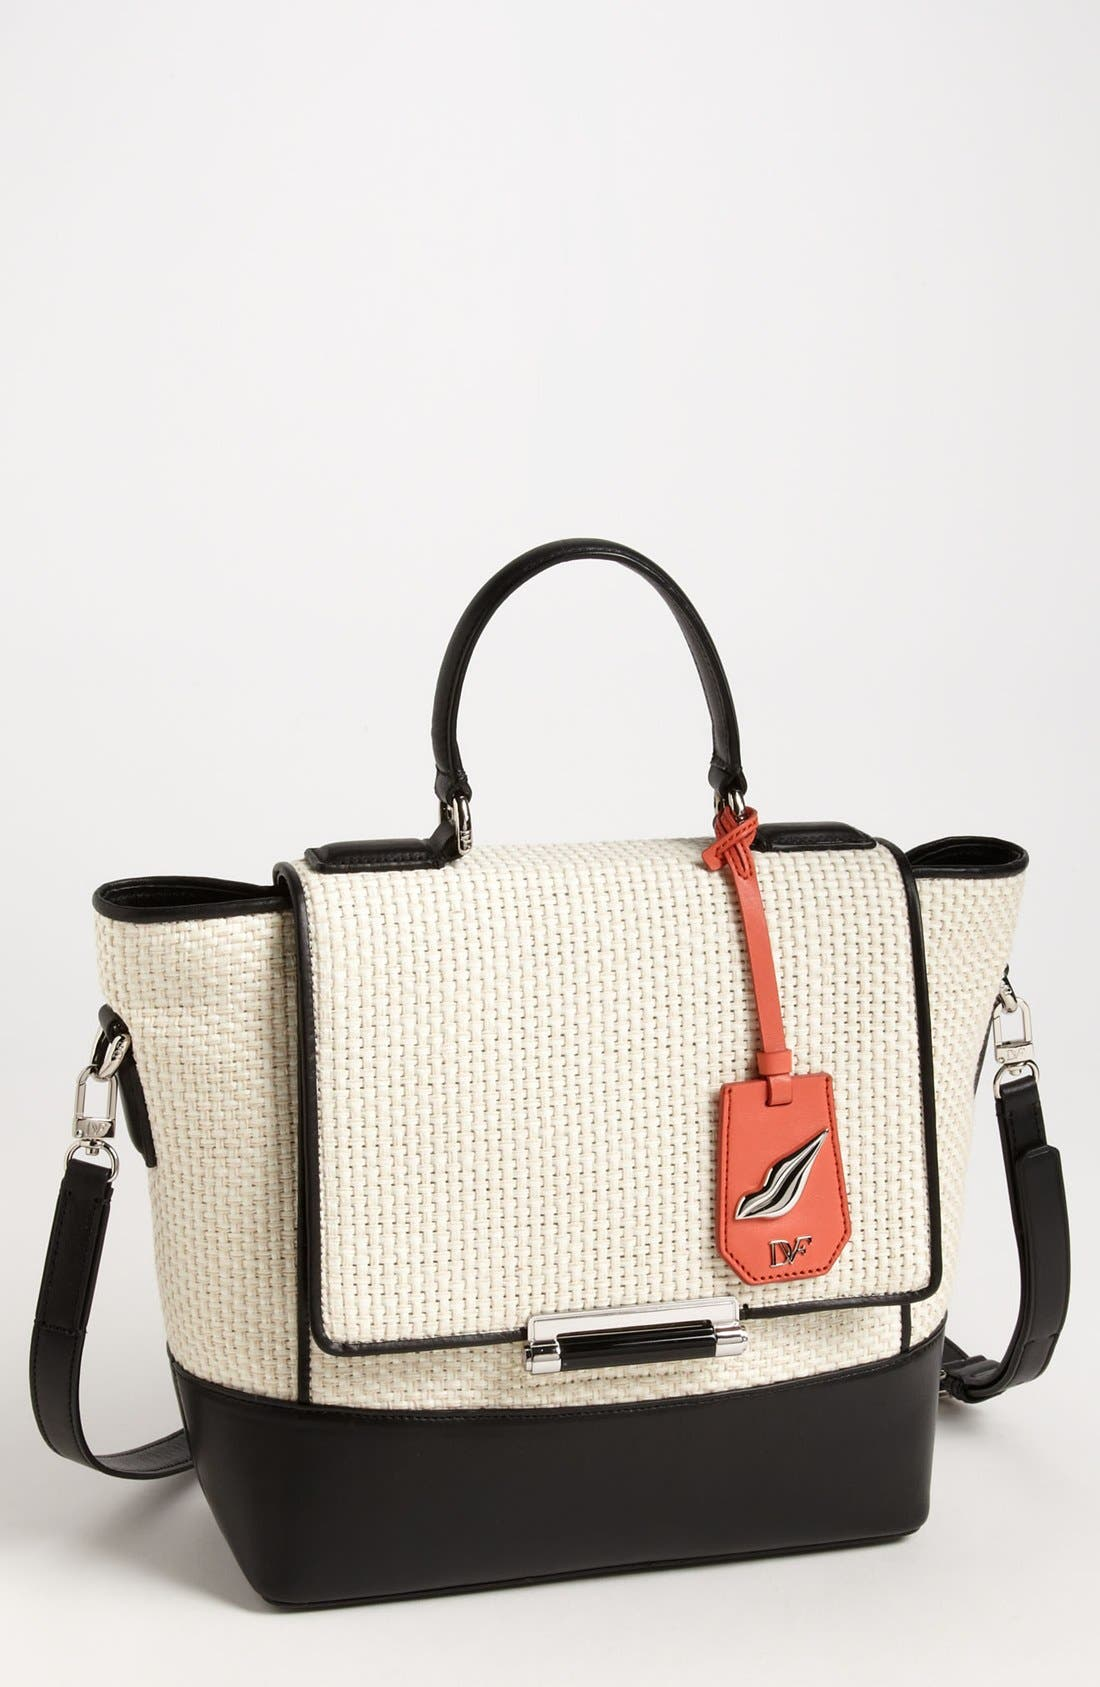 Alternate Image 1 Selected - Diane von Furstenberg '440 Top Handle - Small' Tote